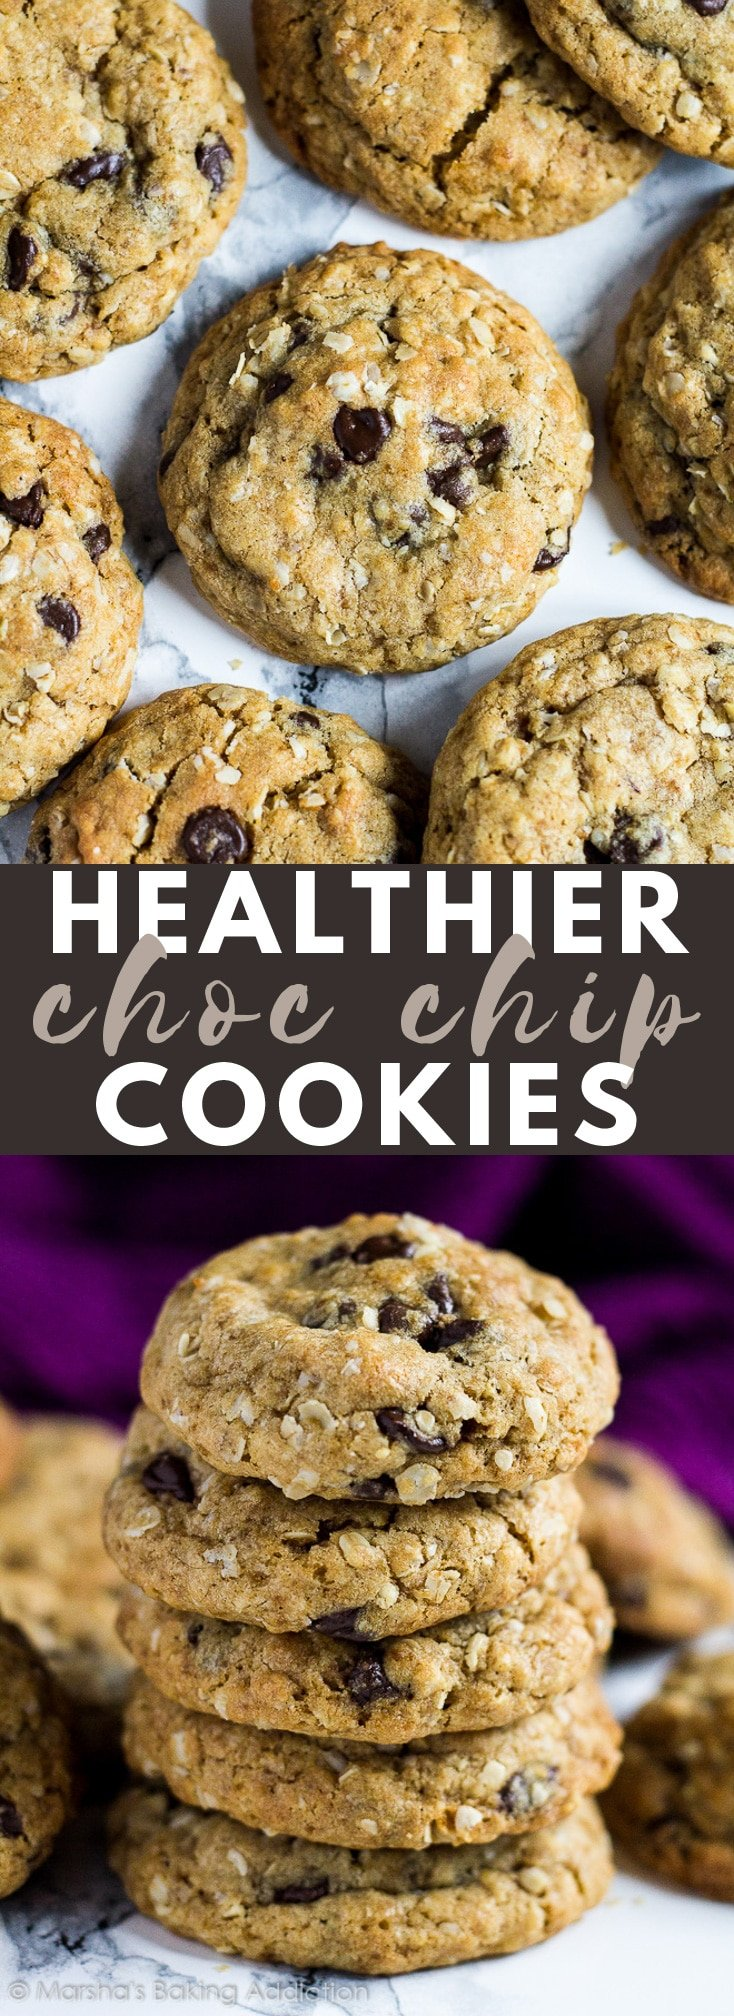 Healthier Chocolate Chip Cookies – Deliciously thick and chewy chocolate chip cookies made with no butter, or refined white sugar. The BEST healthier cookies!